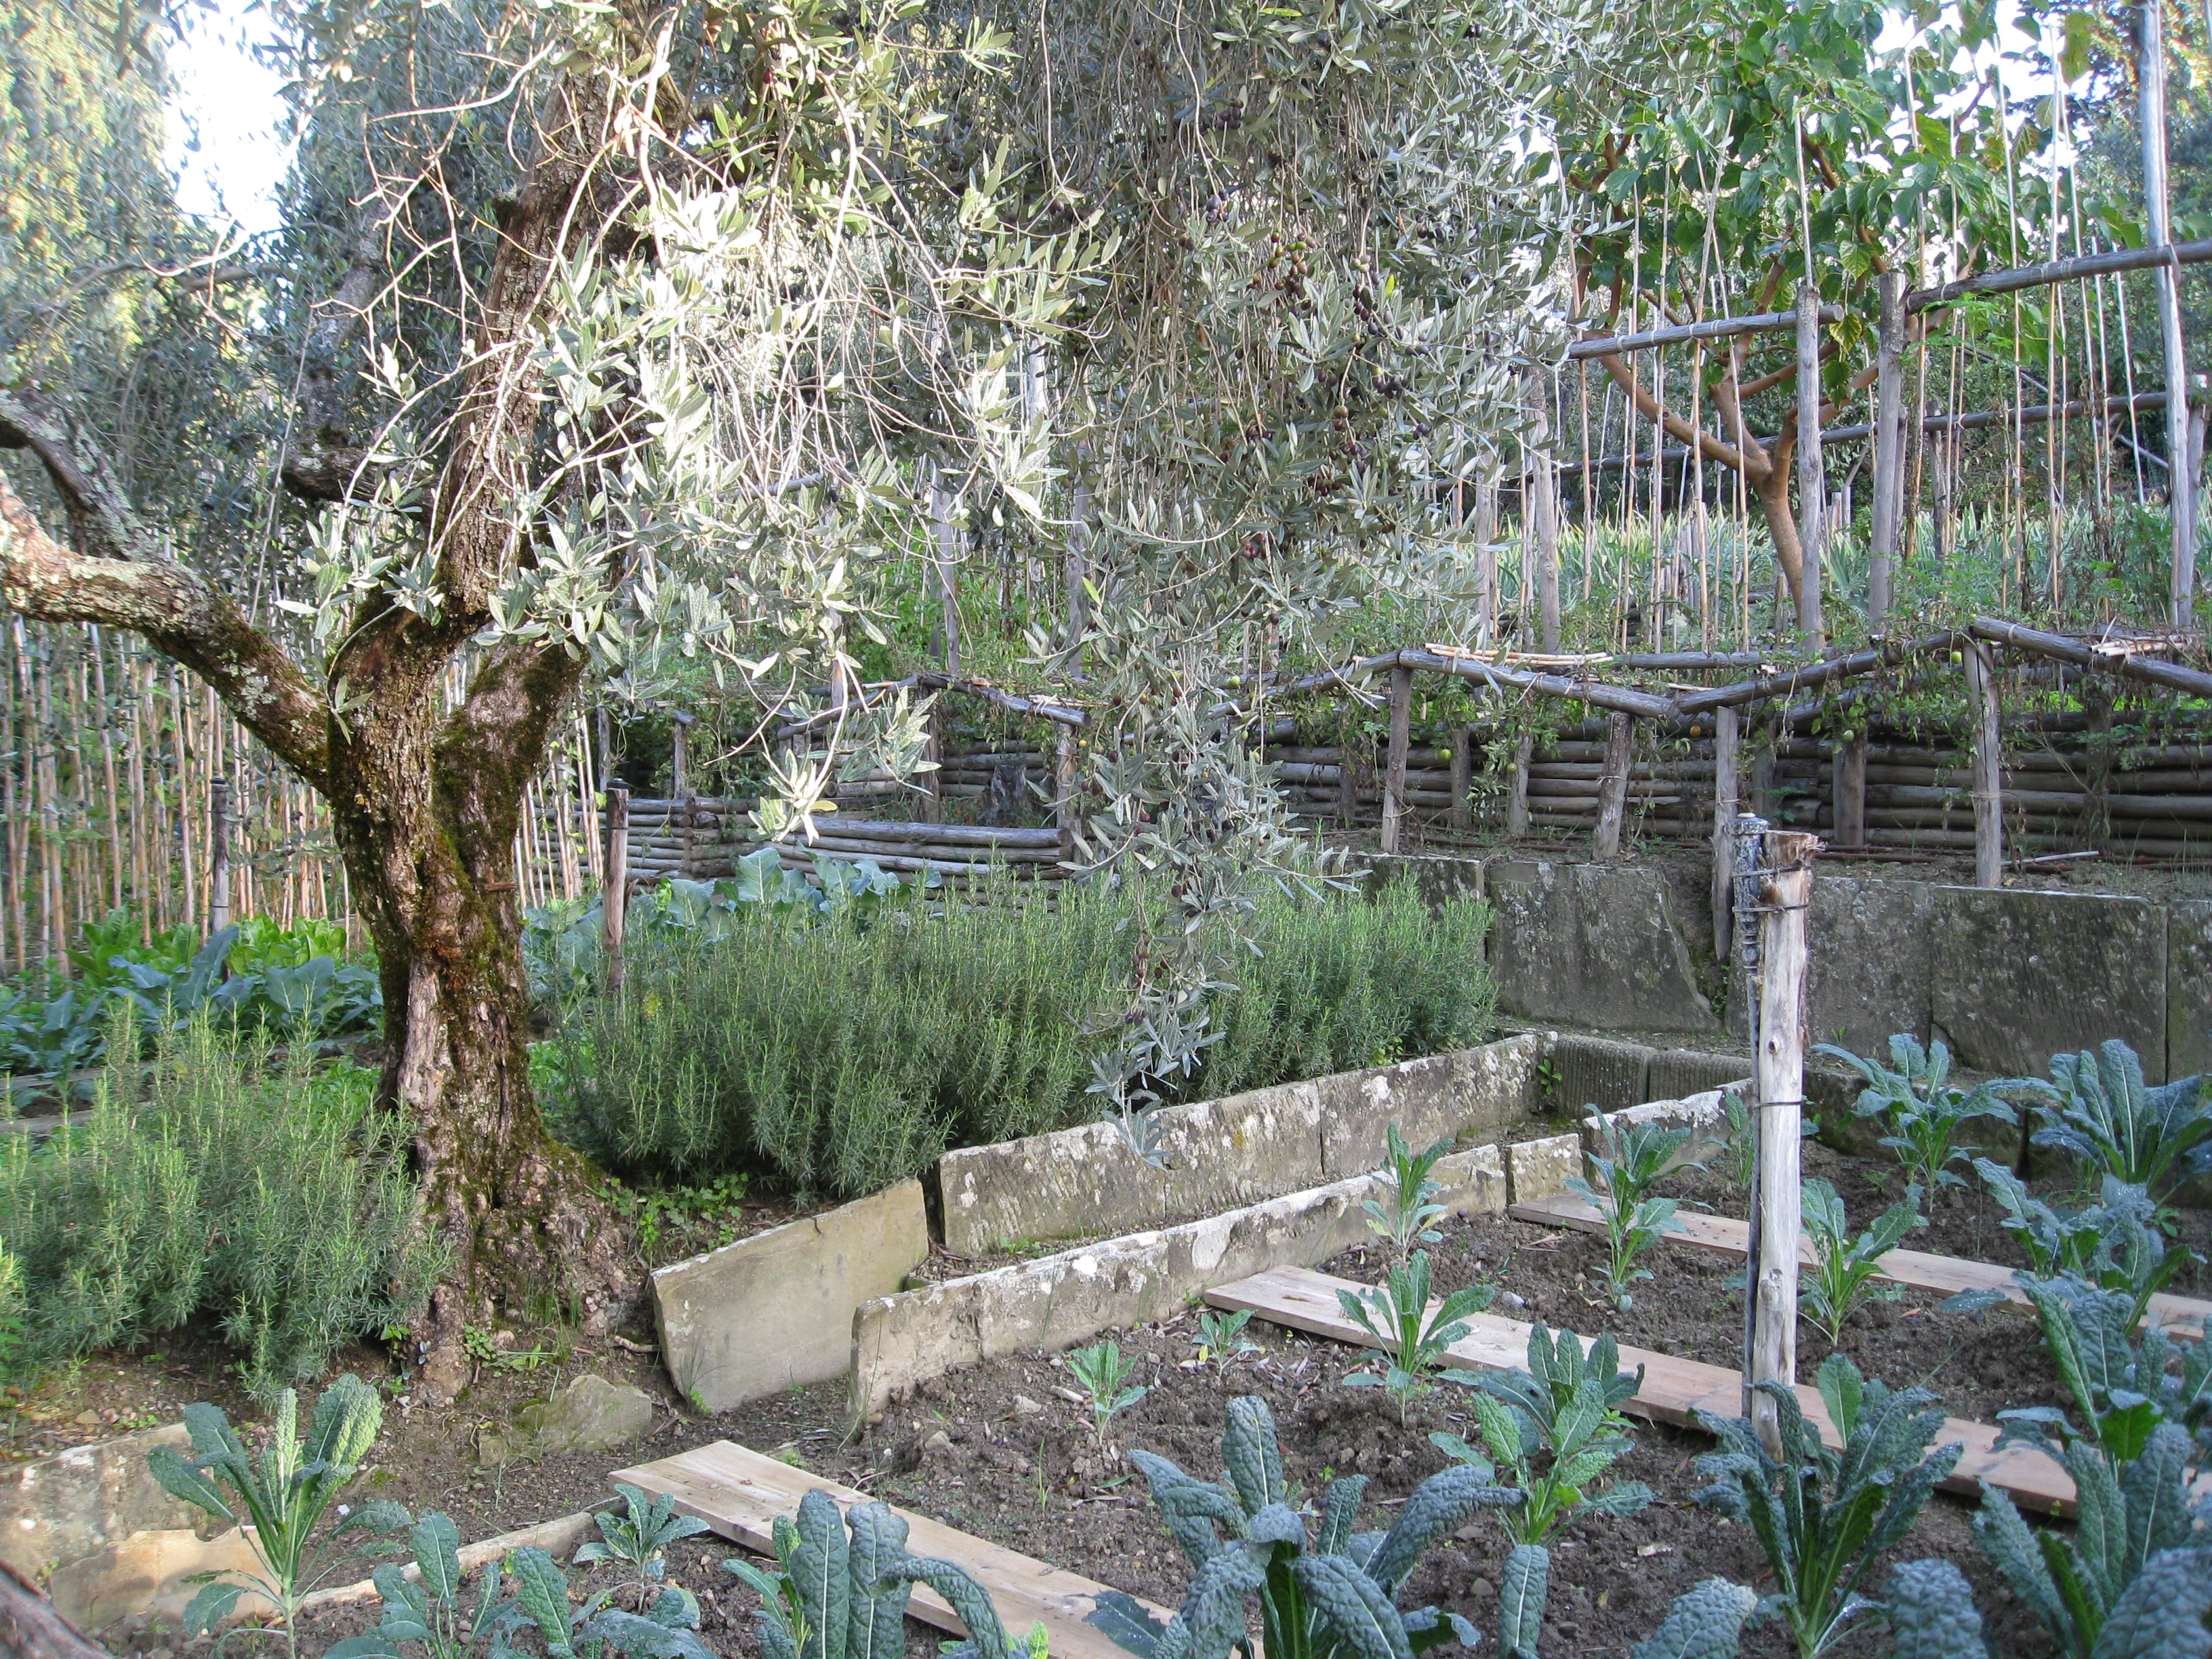 Olive trees ladened with fruit anchor the garden.